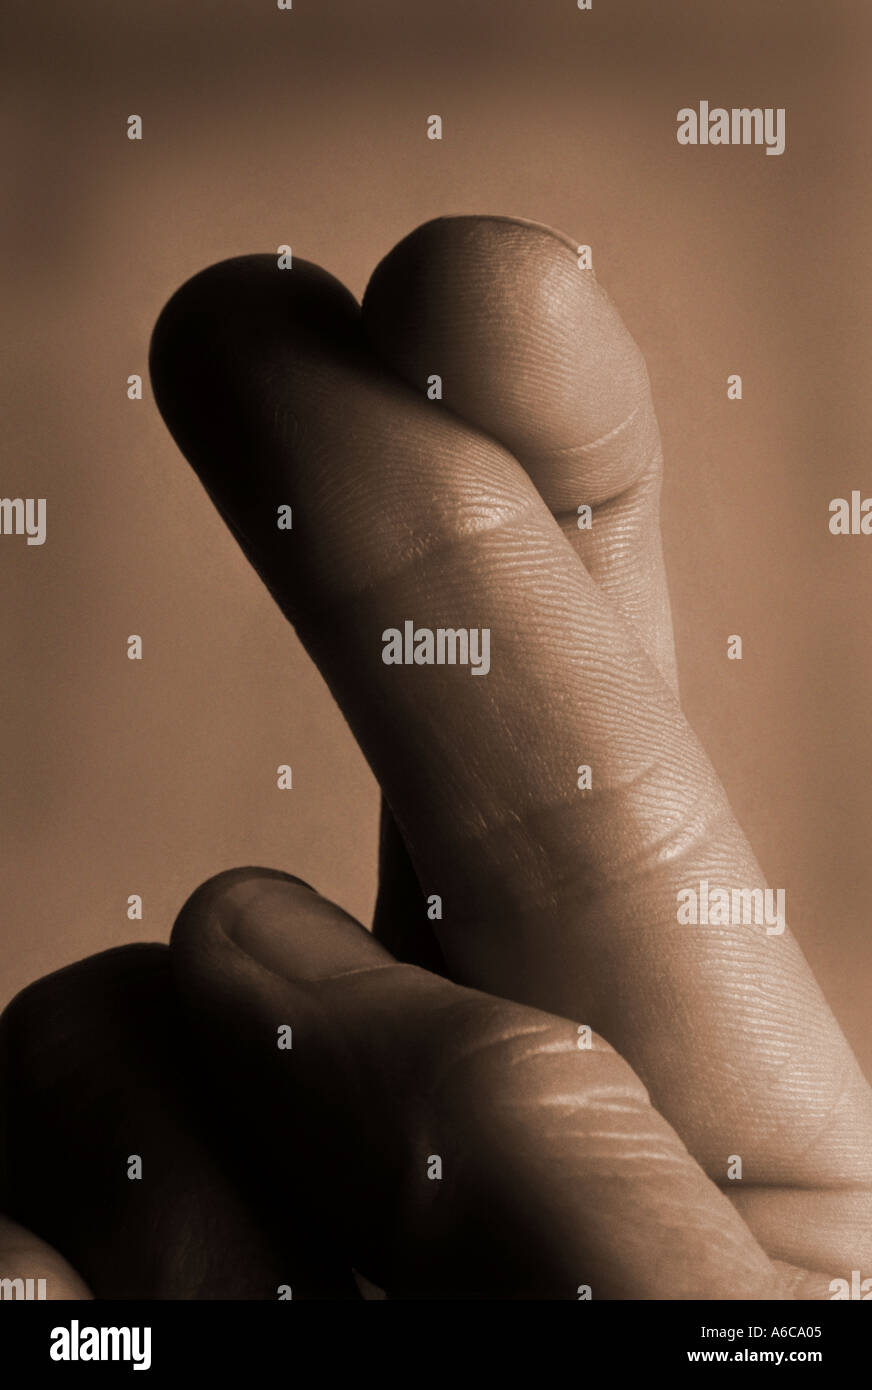 fingers crossed - Stock Image